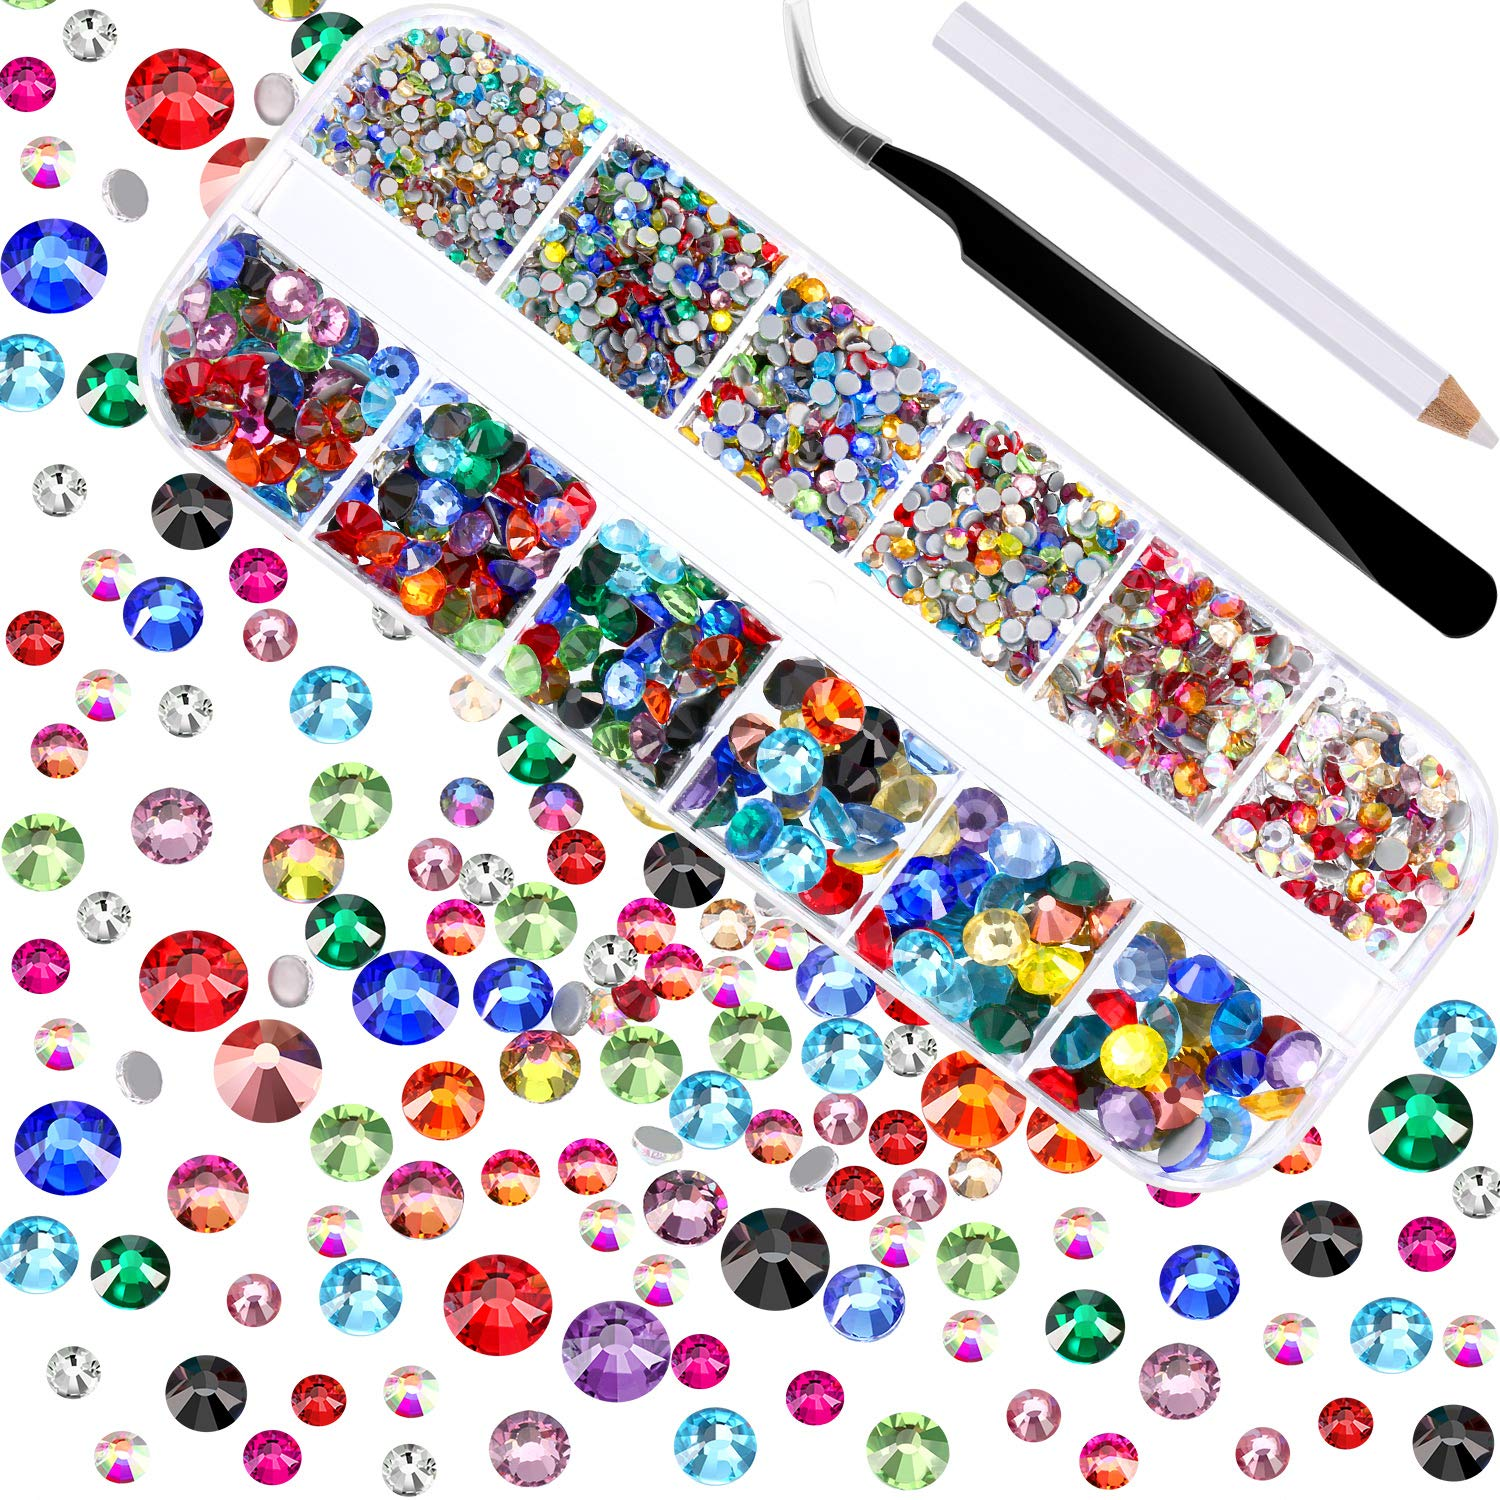 2000 Pieces Hot Fix Glass Flatback Rhinestones HotFix Round Crystal Gems 1.5-6 MM (SS4-SS30) in Storage Box with Tweezers and Picking Rhinestones Pen (Multicolor) by Jovitec